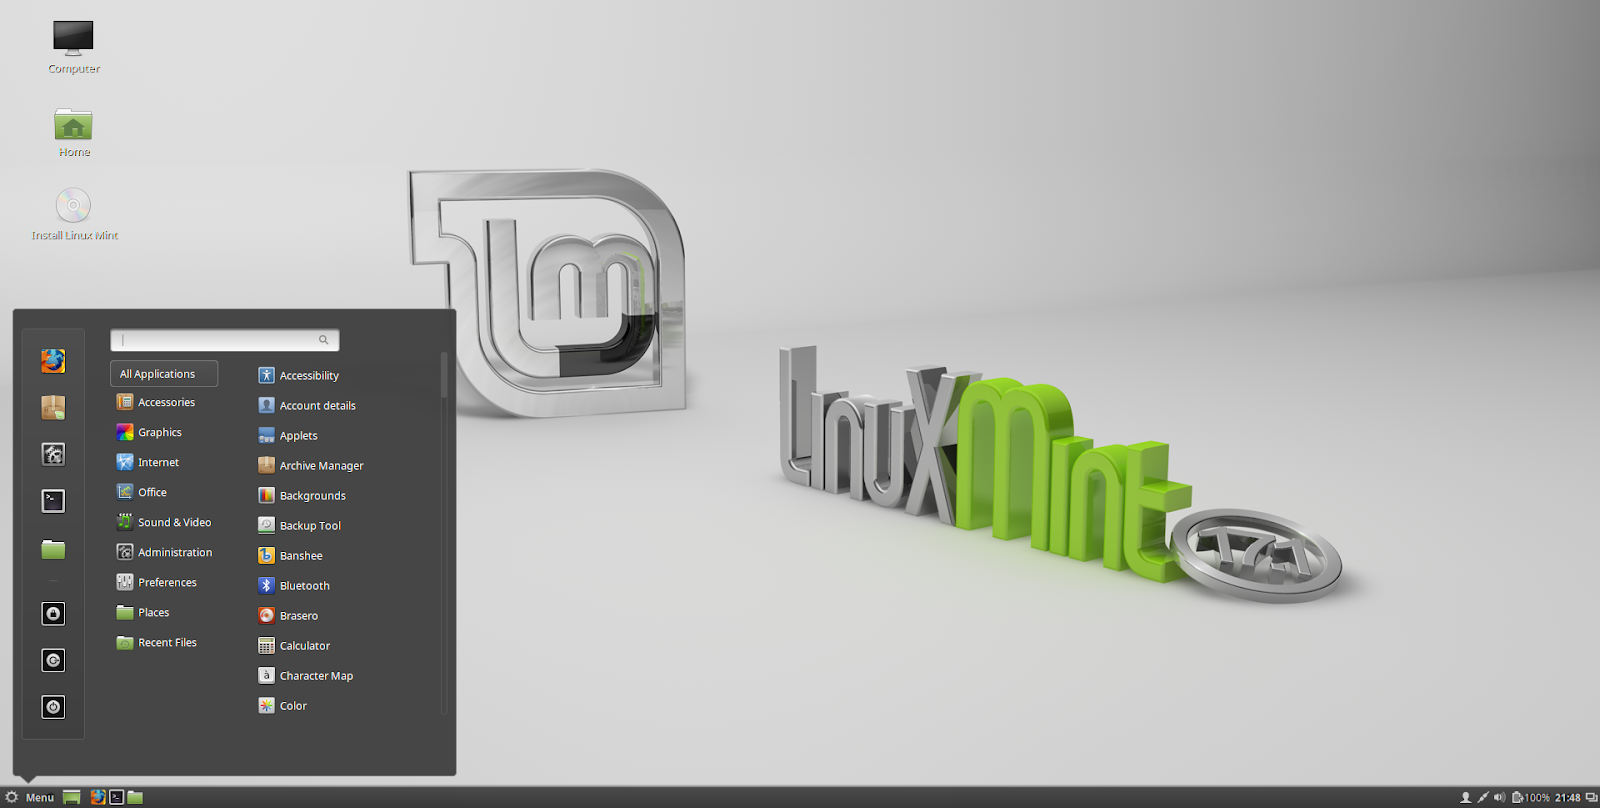 linux desktop reviews linux mint 17 1 cinnamon traditional and elegant linux distro aimed at simplicity linux mint 17 1 cinnamon traditional